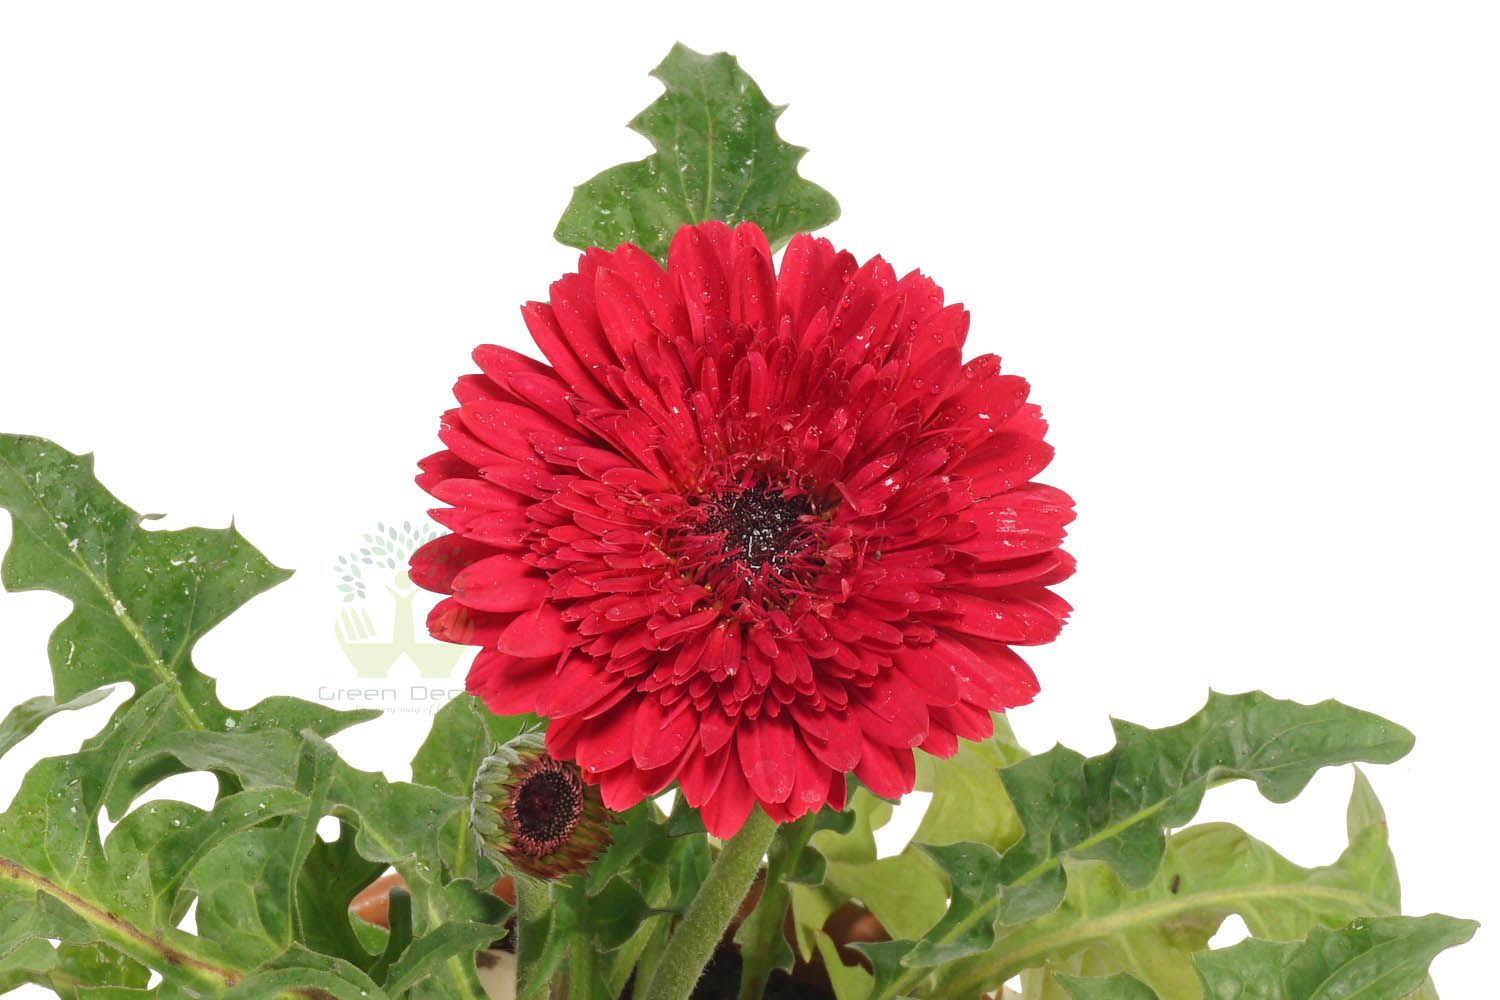 Buy Gerbera Pink Plant Leaves View, White Pots and Seeds in Delhi NCR by the best online nursery shop Greendecor.